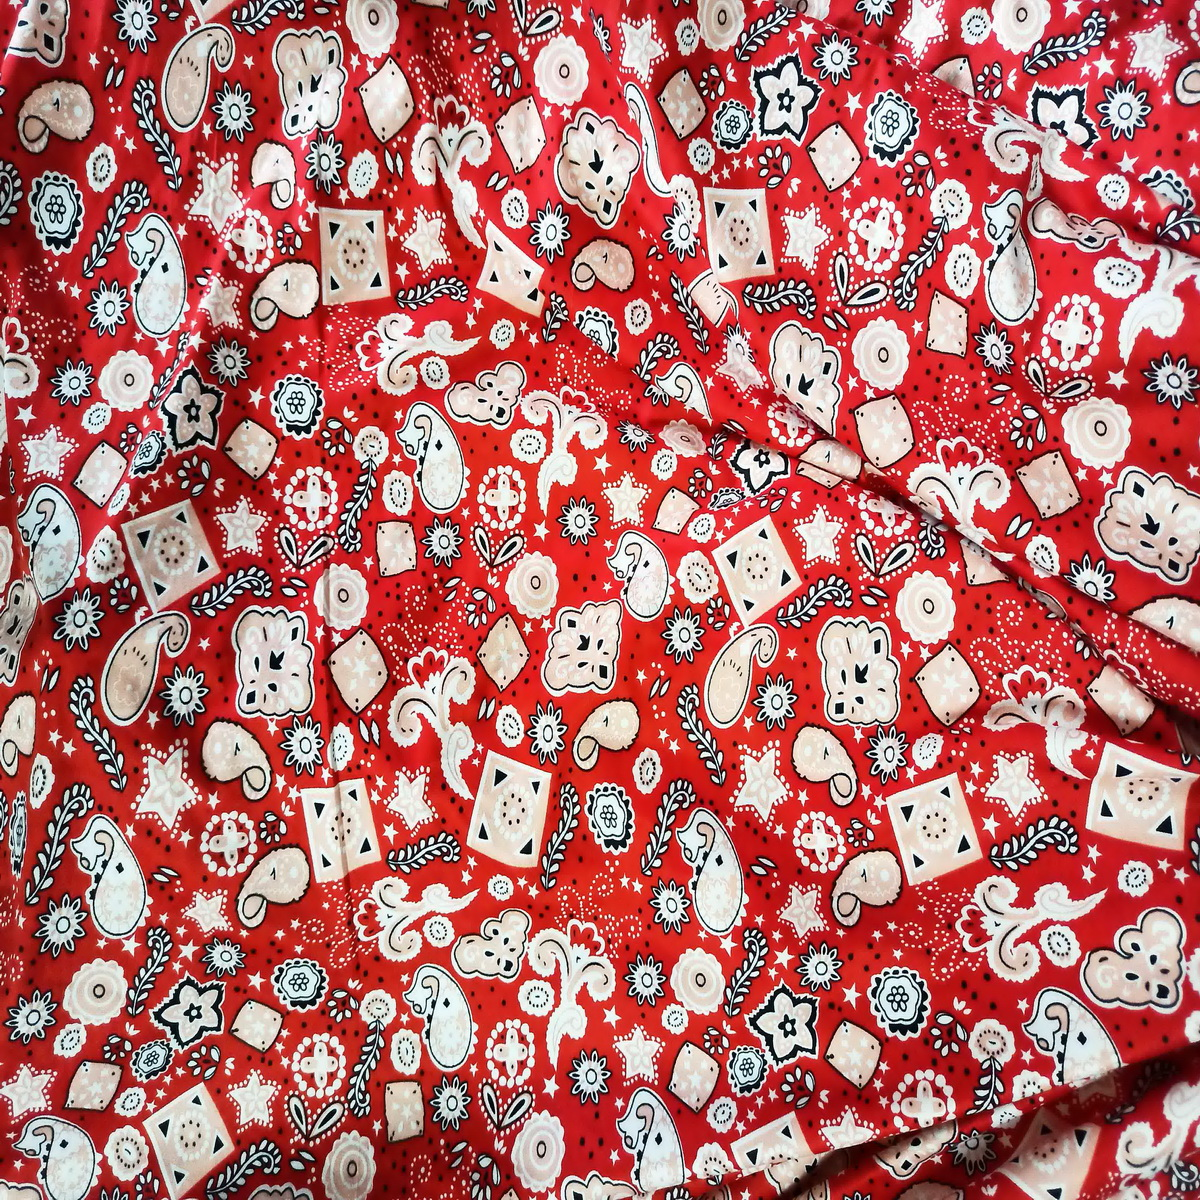 Red Printed Hosiery Fabric Lycra Cotton Mix Cloth 65 inch wide HF018 1